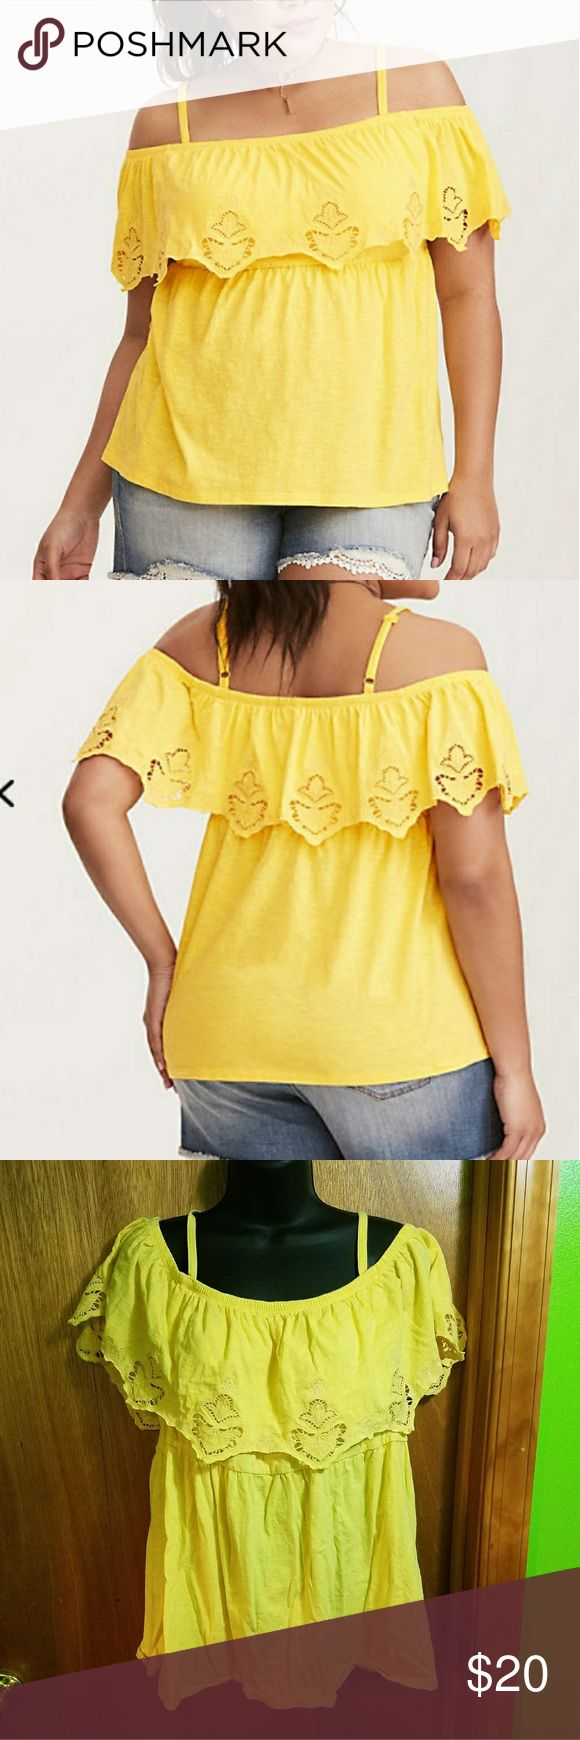 Babydoll Cold Shoulder Tank Close your eyes and think of summer. This top should appear. The bright yellow knit is totally hot, while the cold shoulder cutouts reap the benefits of the sun with skin-baring straps. A scalloped and eyelet-embellished ruffled overlay lends flounce to the stretchy babydoll waist underneath.  Worn no more than twice. torrid Tops Blouses